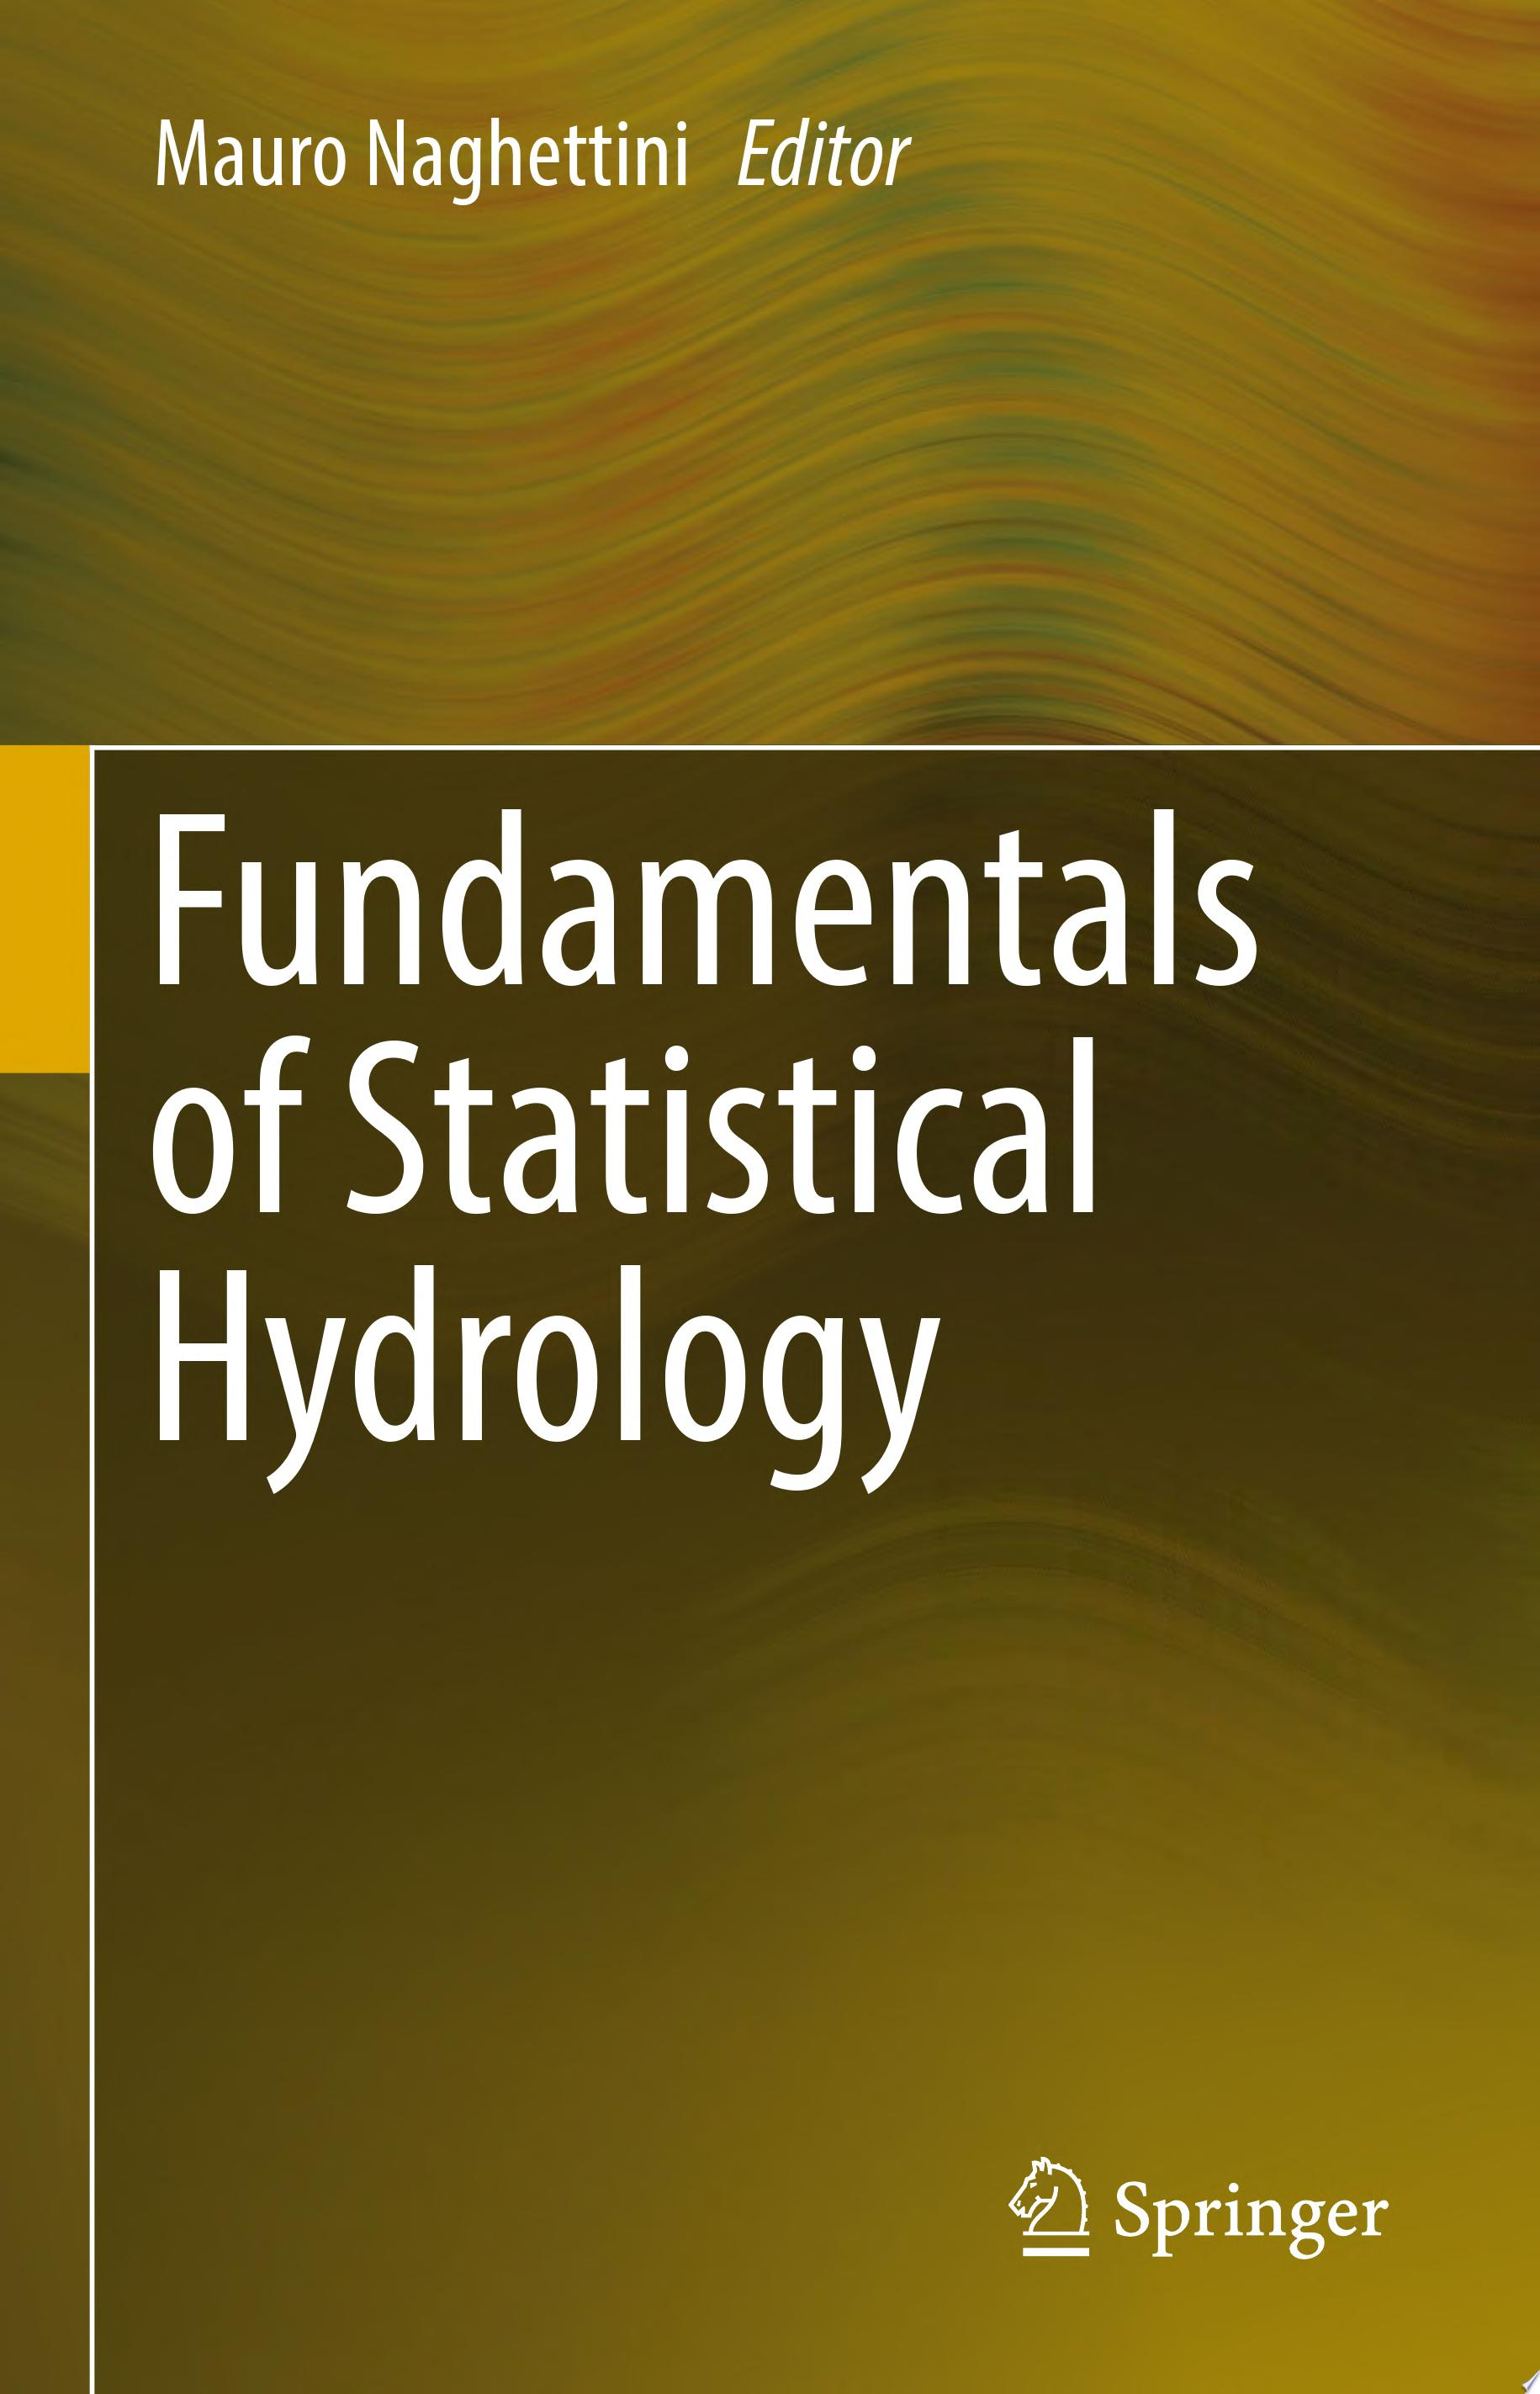 Fundamentals of Statistical Hydrology